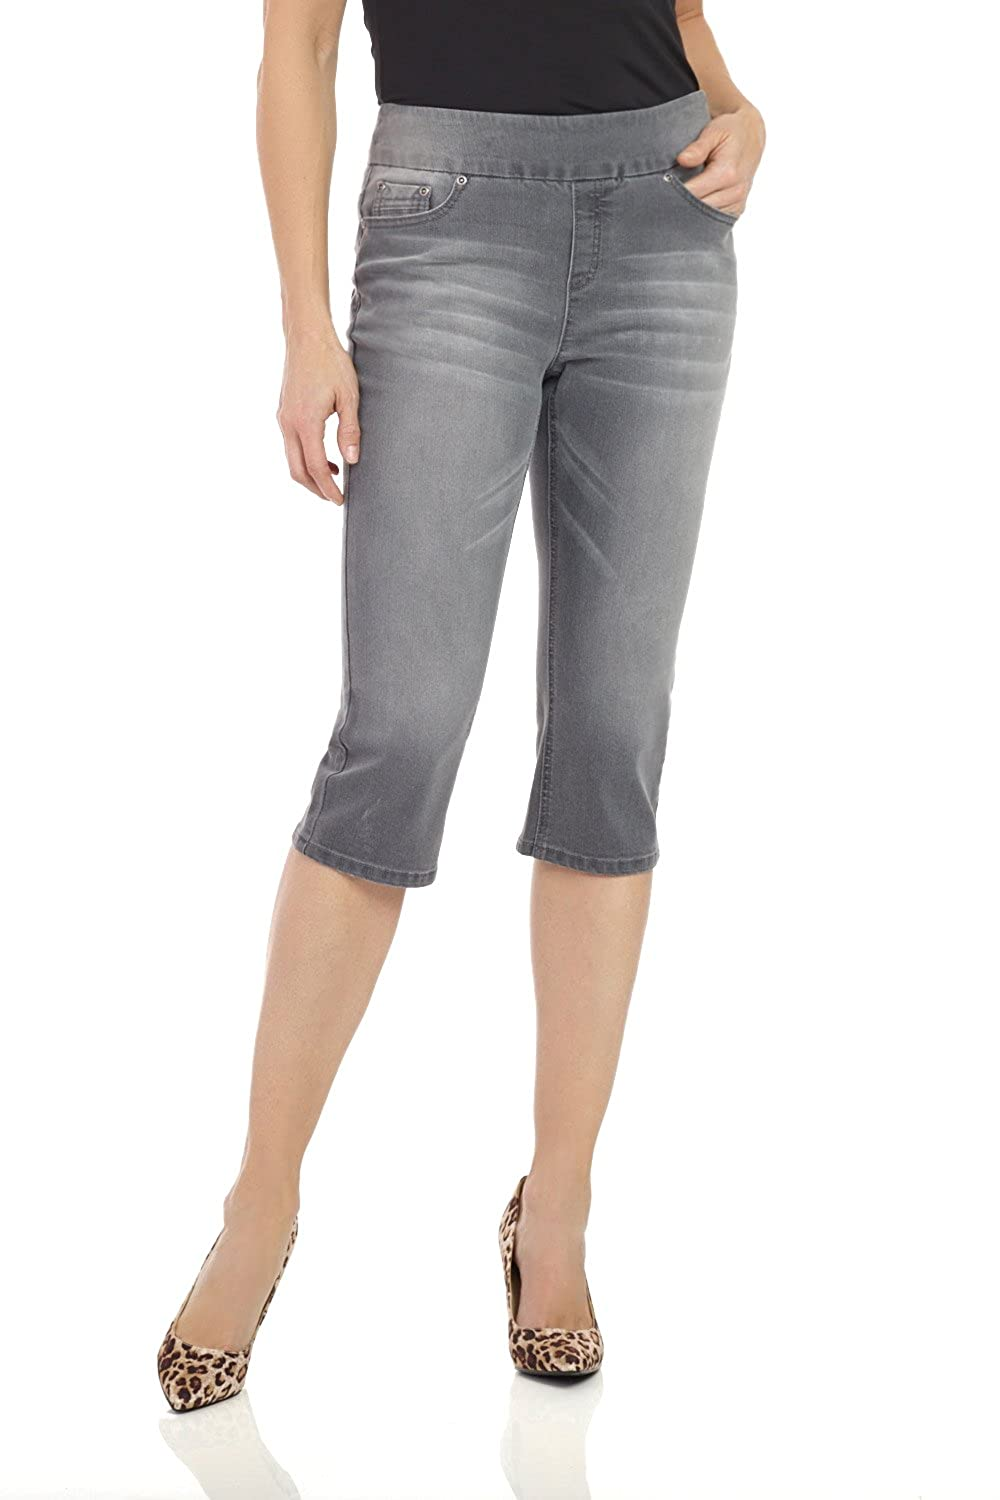 fb0308b6aef Rekucci Womens Ease in to Comfort Fit Stretch Jean Capri at Amazon Women s  Jeans store